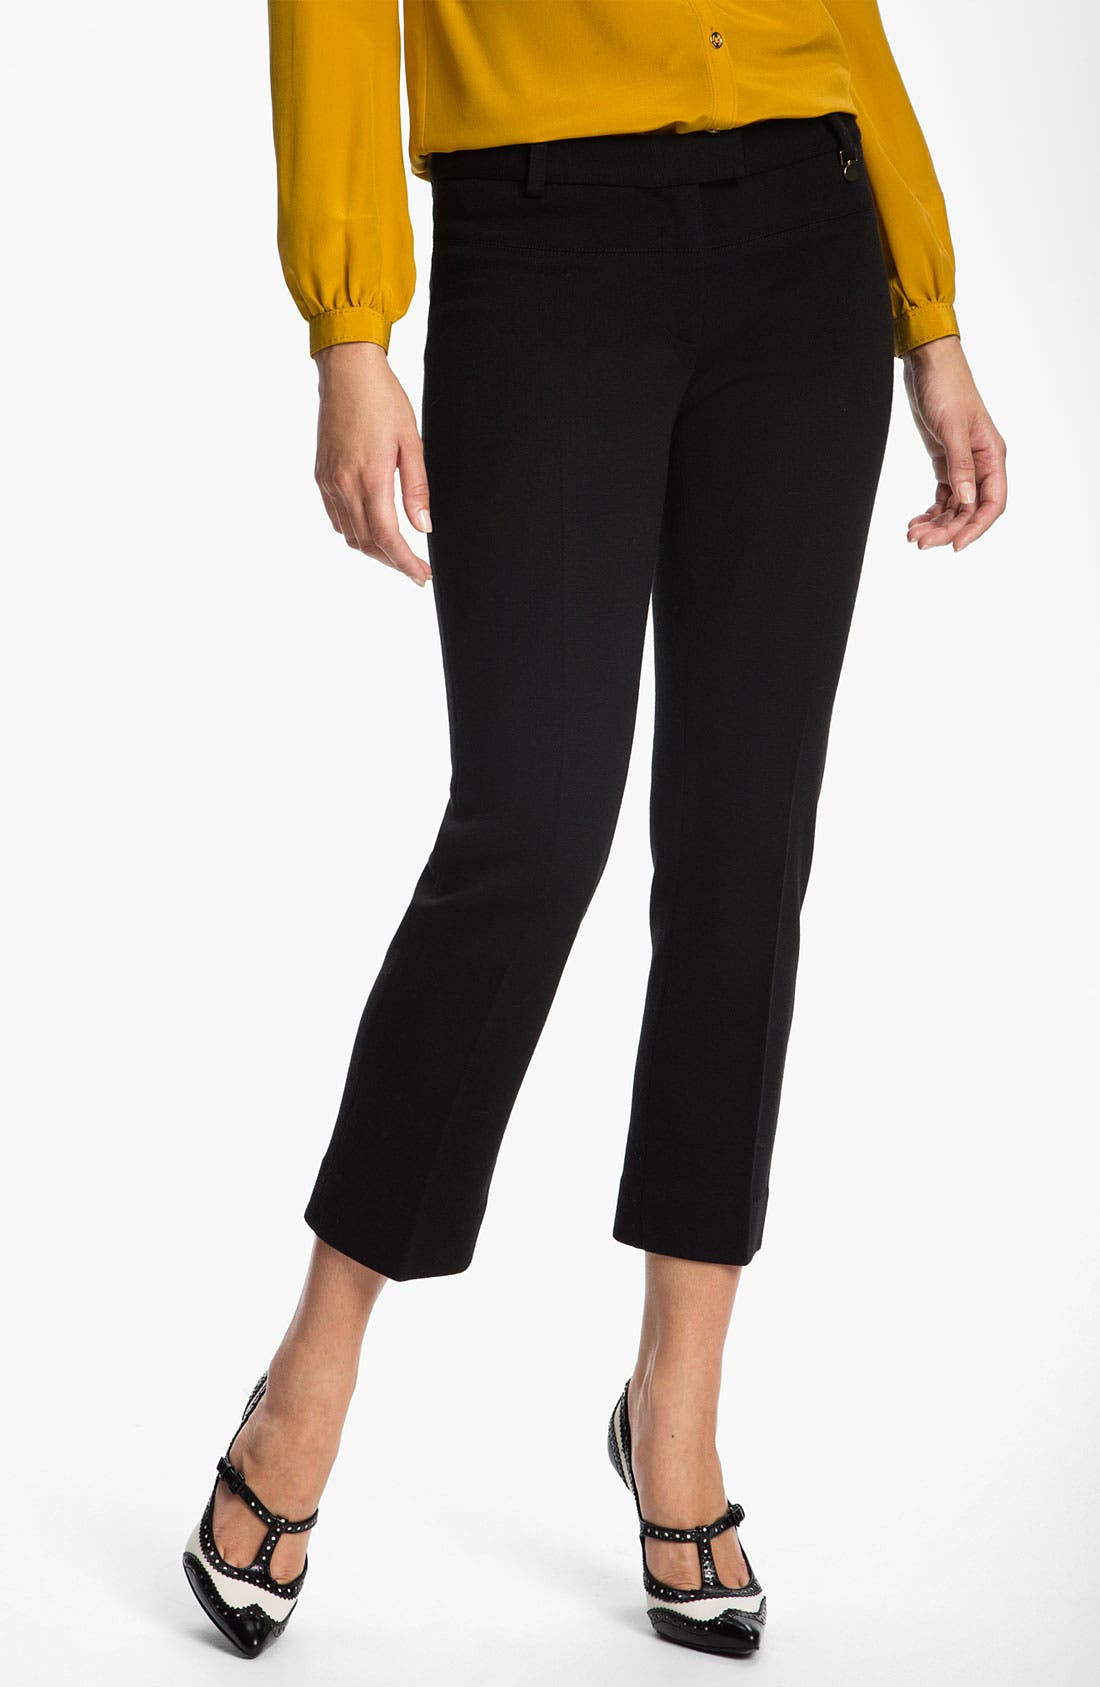 Alternate Image 1 Selected - Tory Burch 'Beverly' Crop Pants